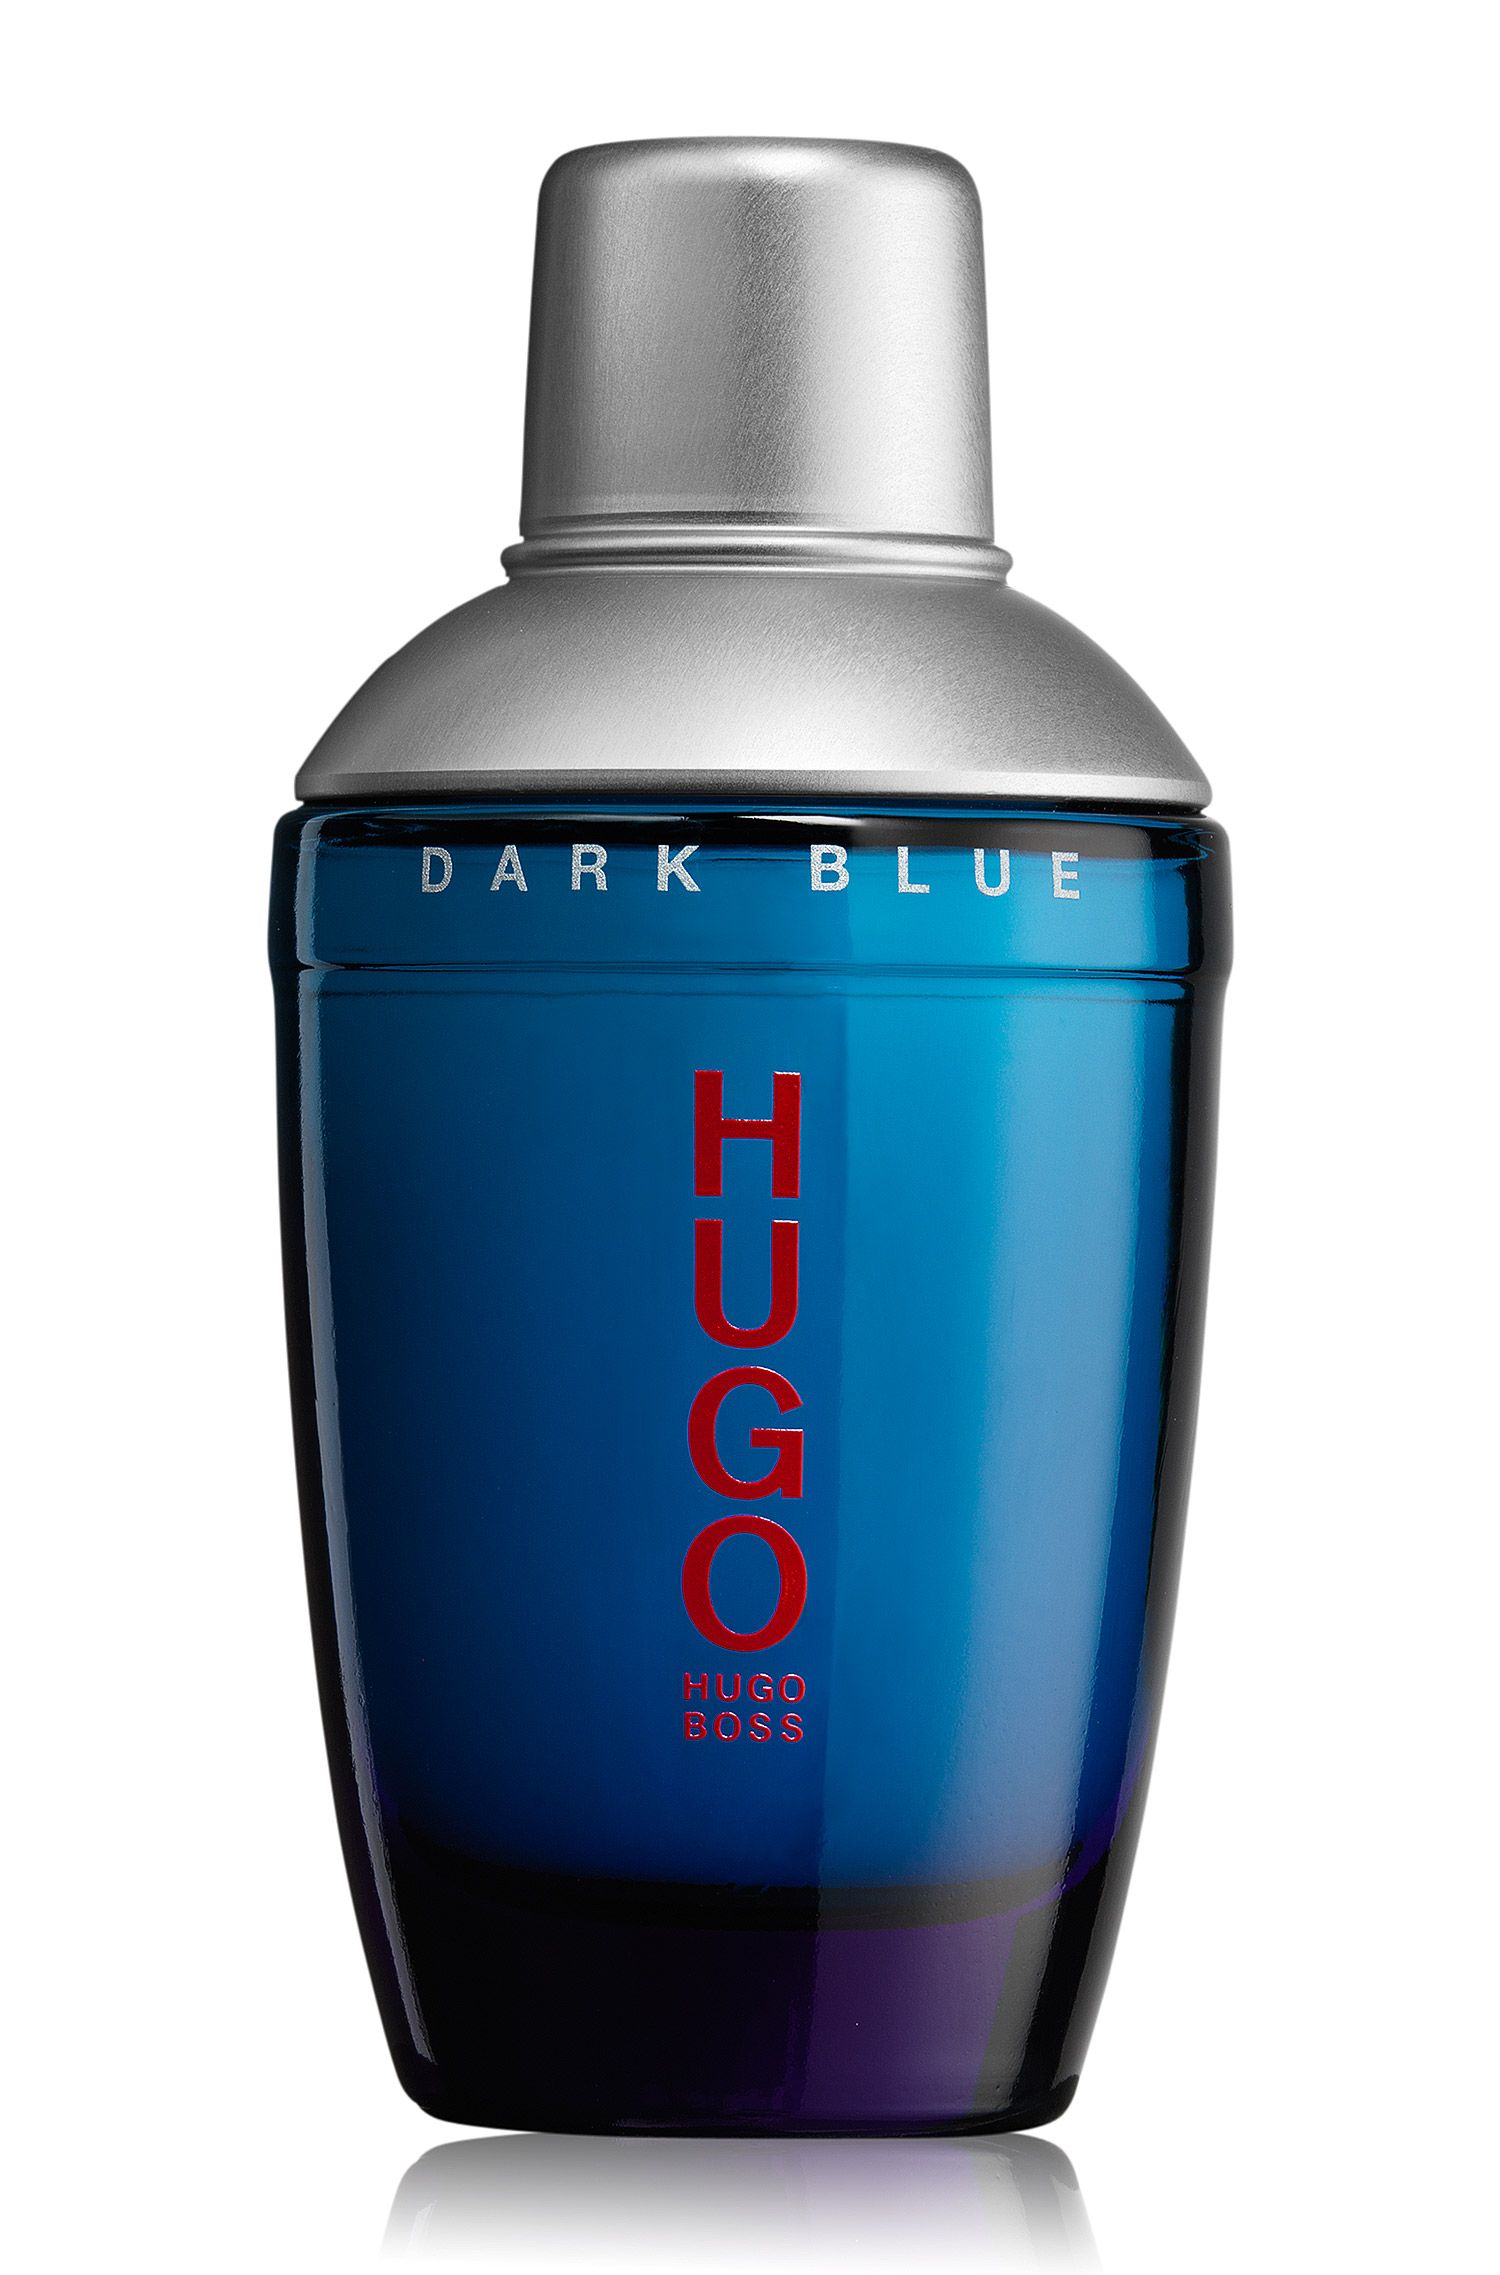 HUGO Dark Blue Eau de Toilette 75 ml by HUGO